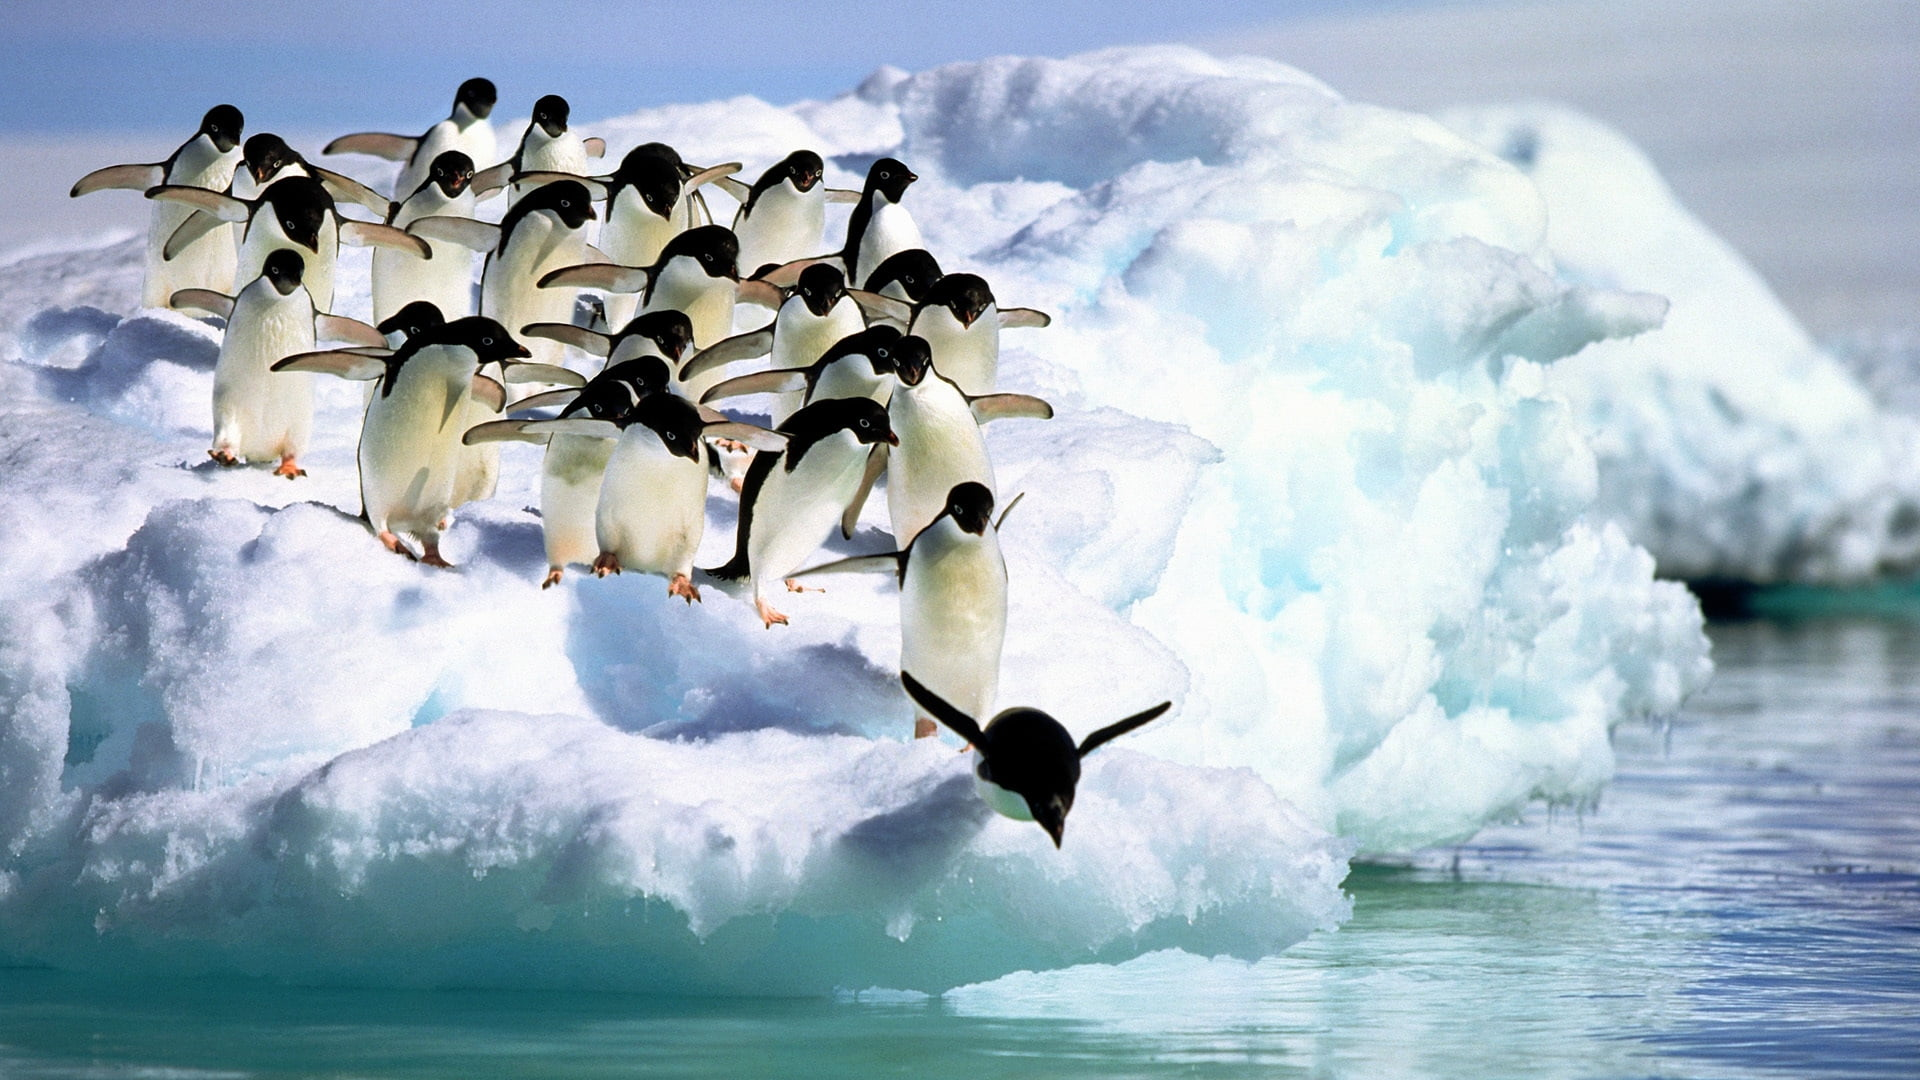 Penguins diving HD wallpaper Wallpaper Flare 1920x1080